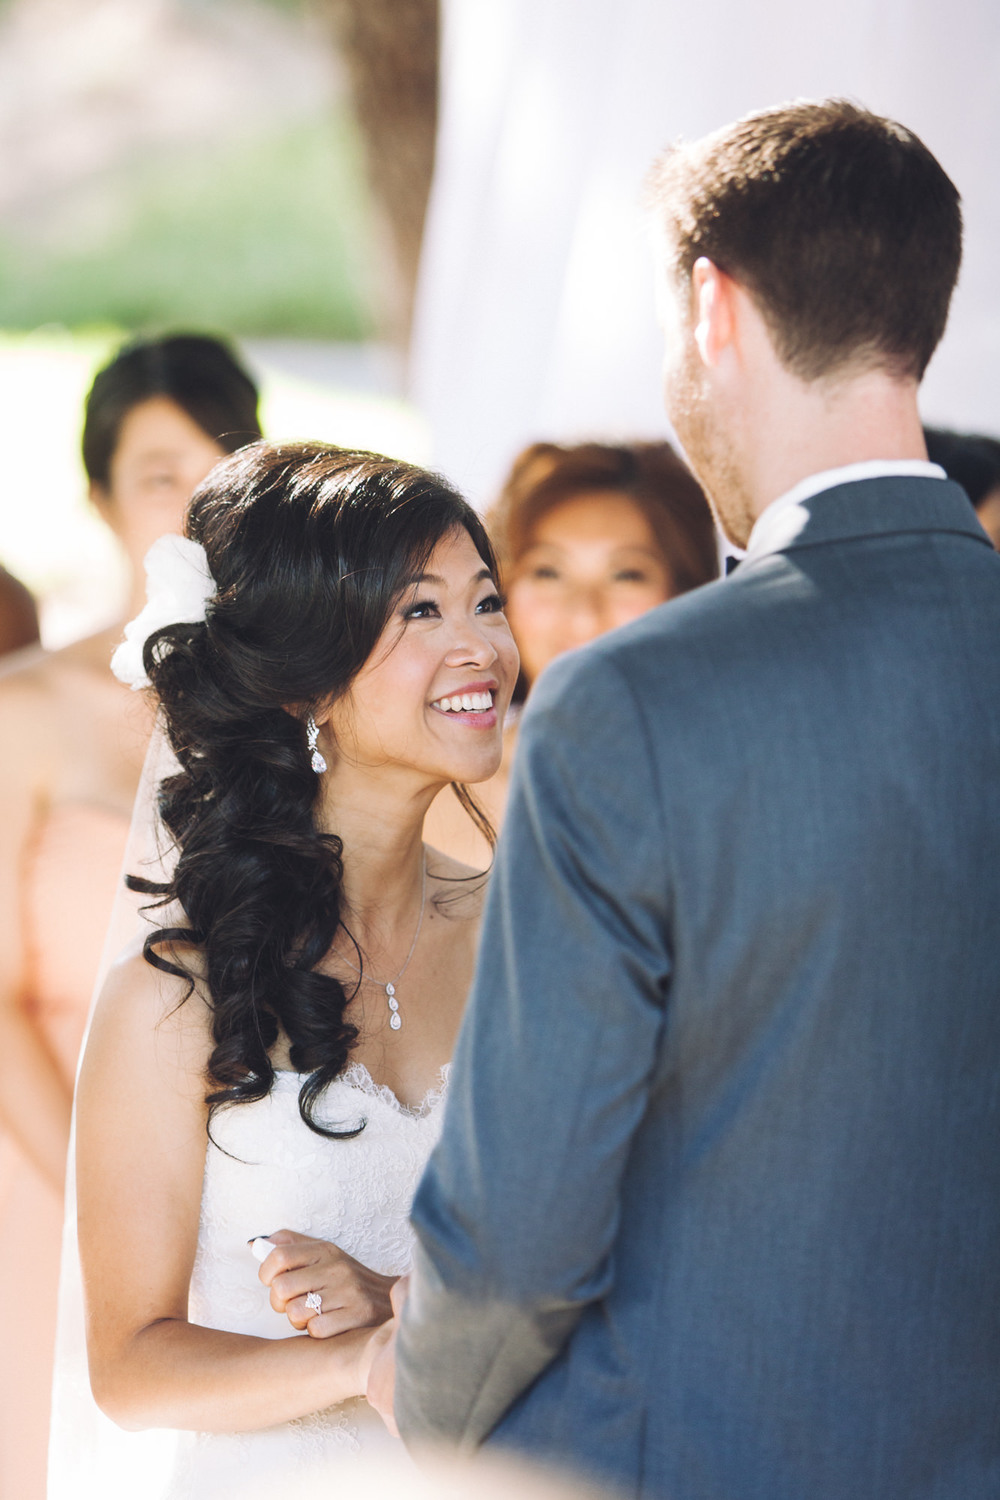 Alice_&_Aaron_Wedding_by_The_Light_&_Glass_Photography-080.jpg